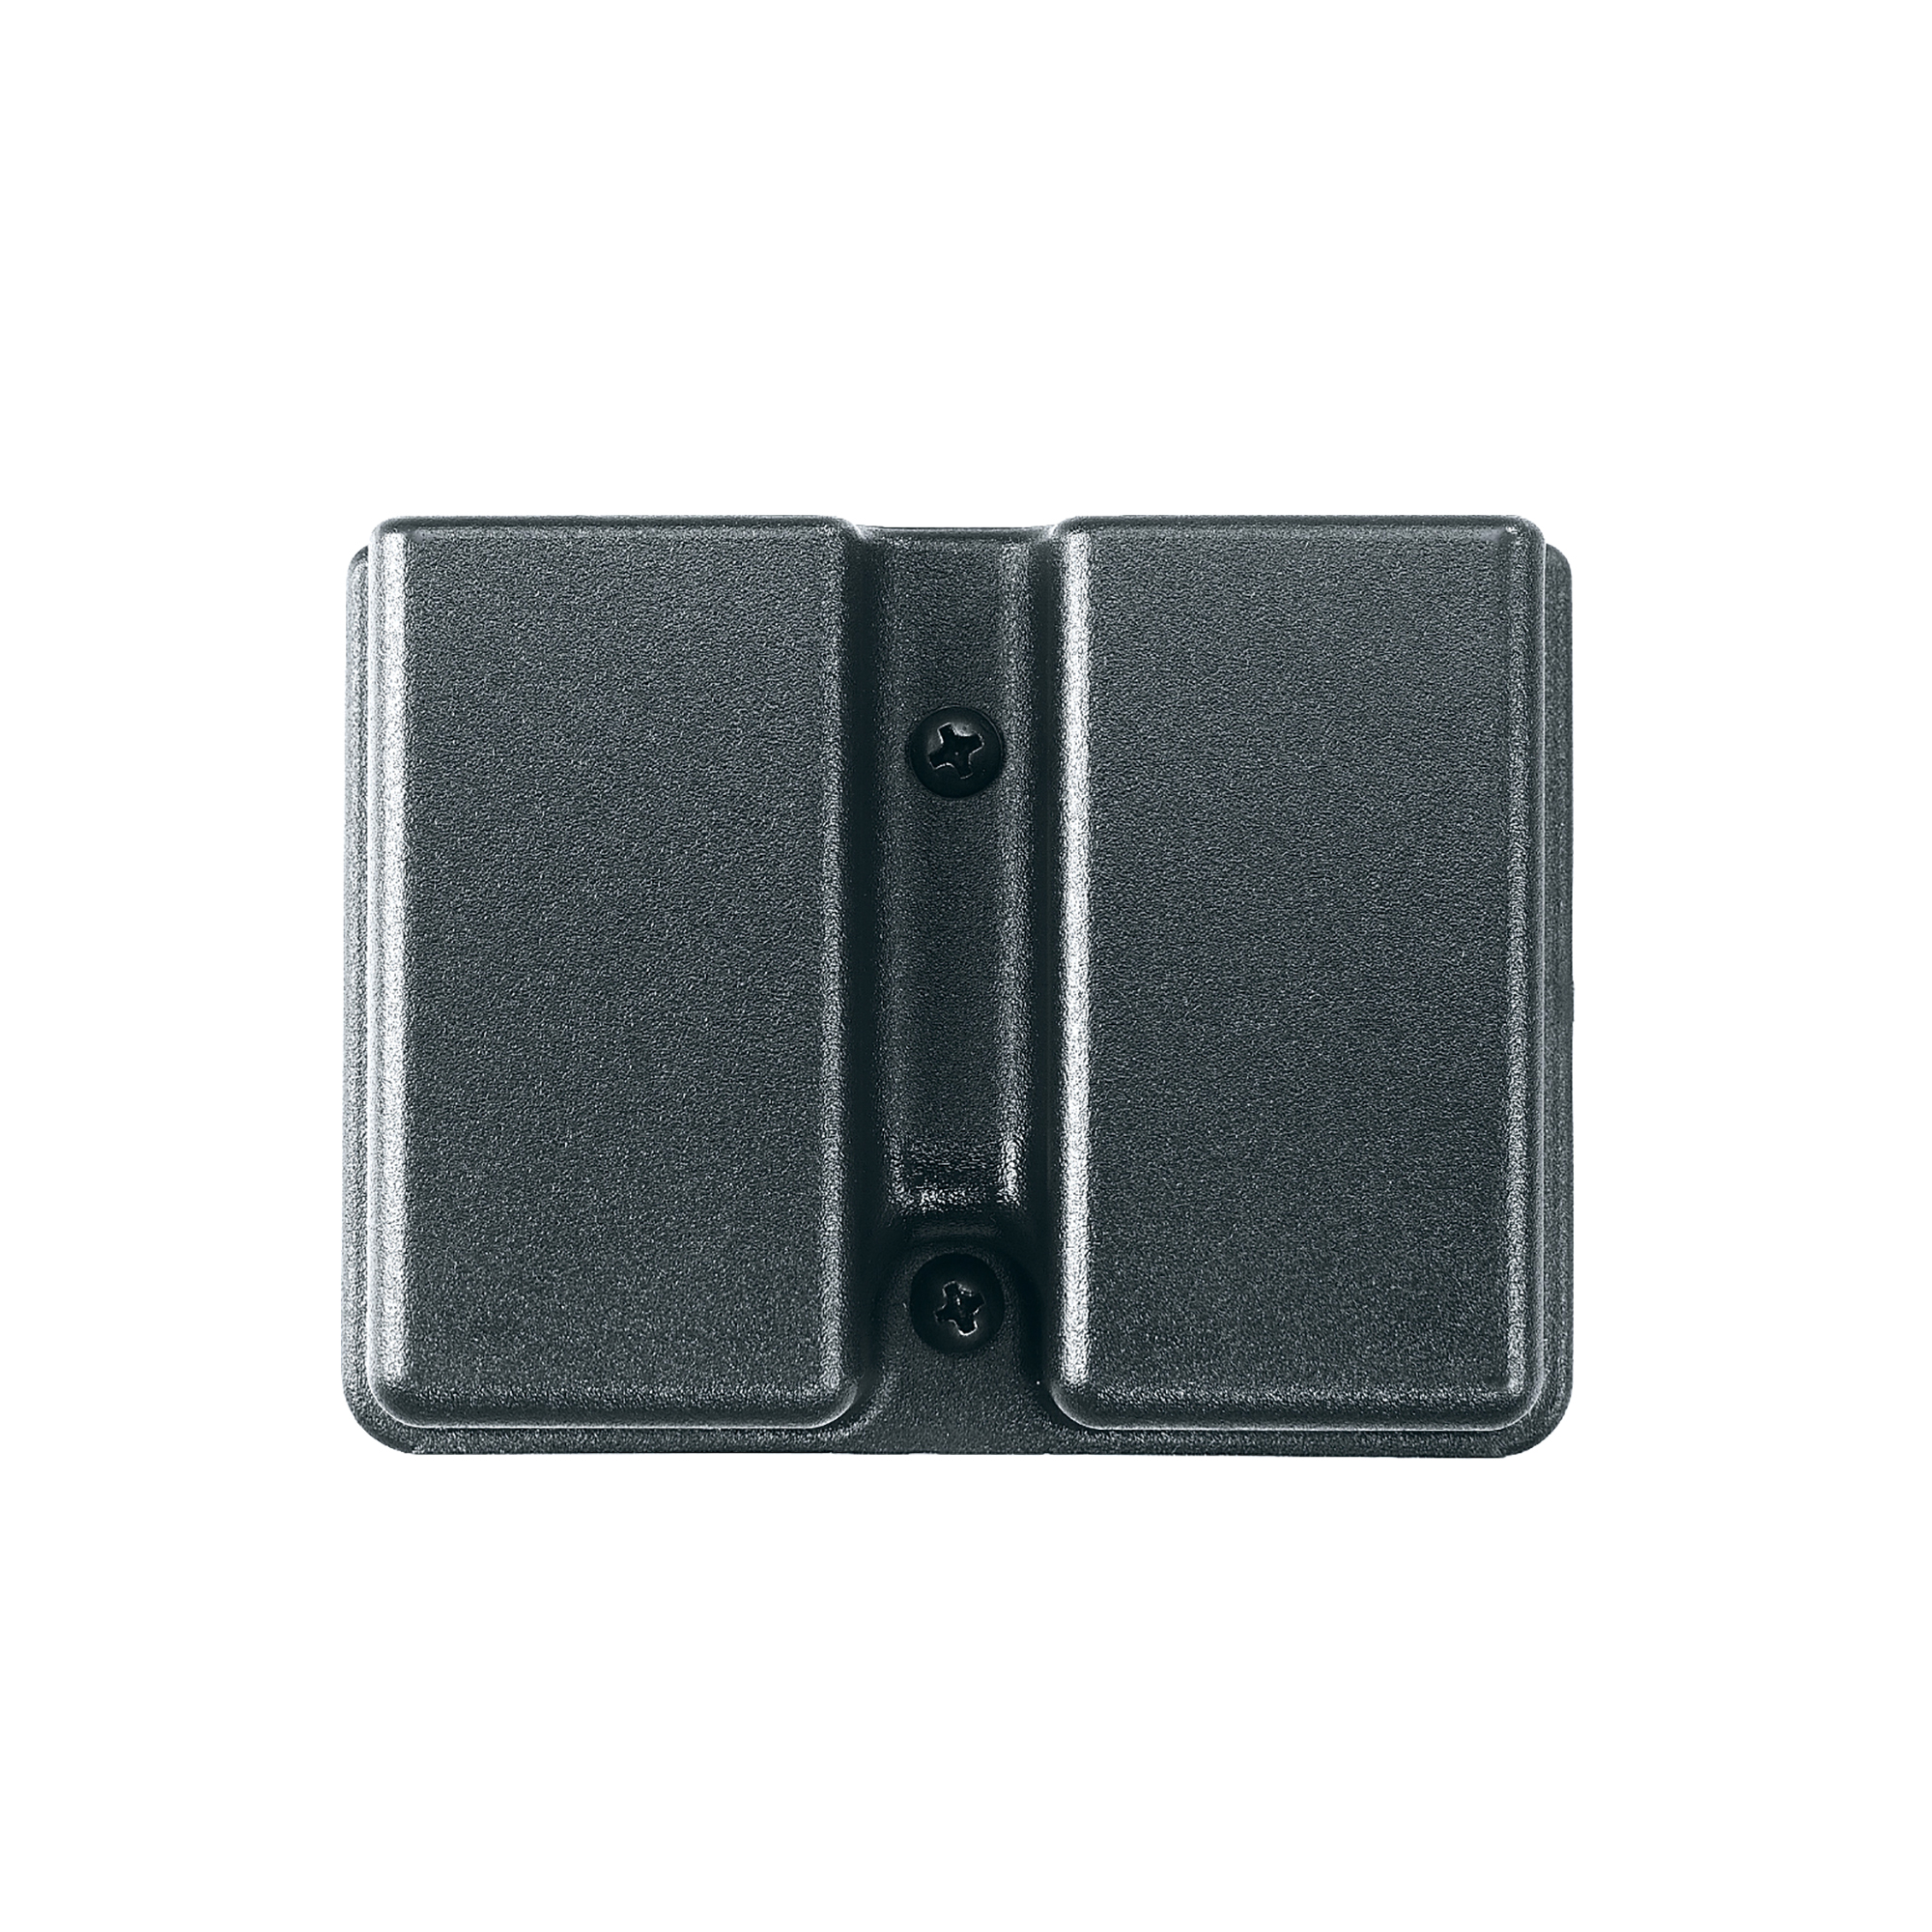 "This is a double row belt model magazine case. Give your magazines the same protection as your firearm. Internal tensioning device for security. Fits belt loops up to 1 3/4""."